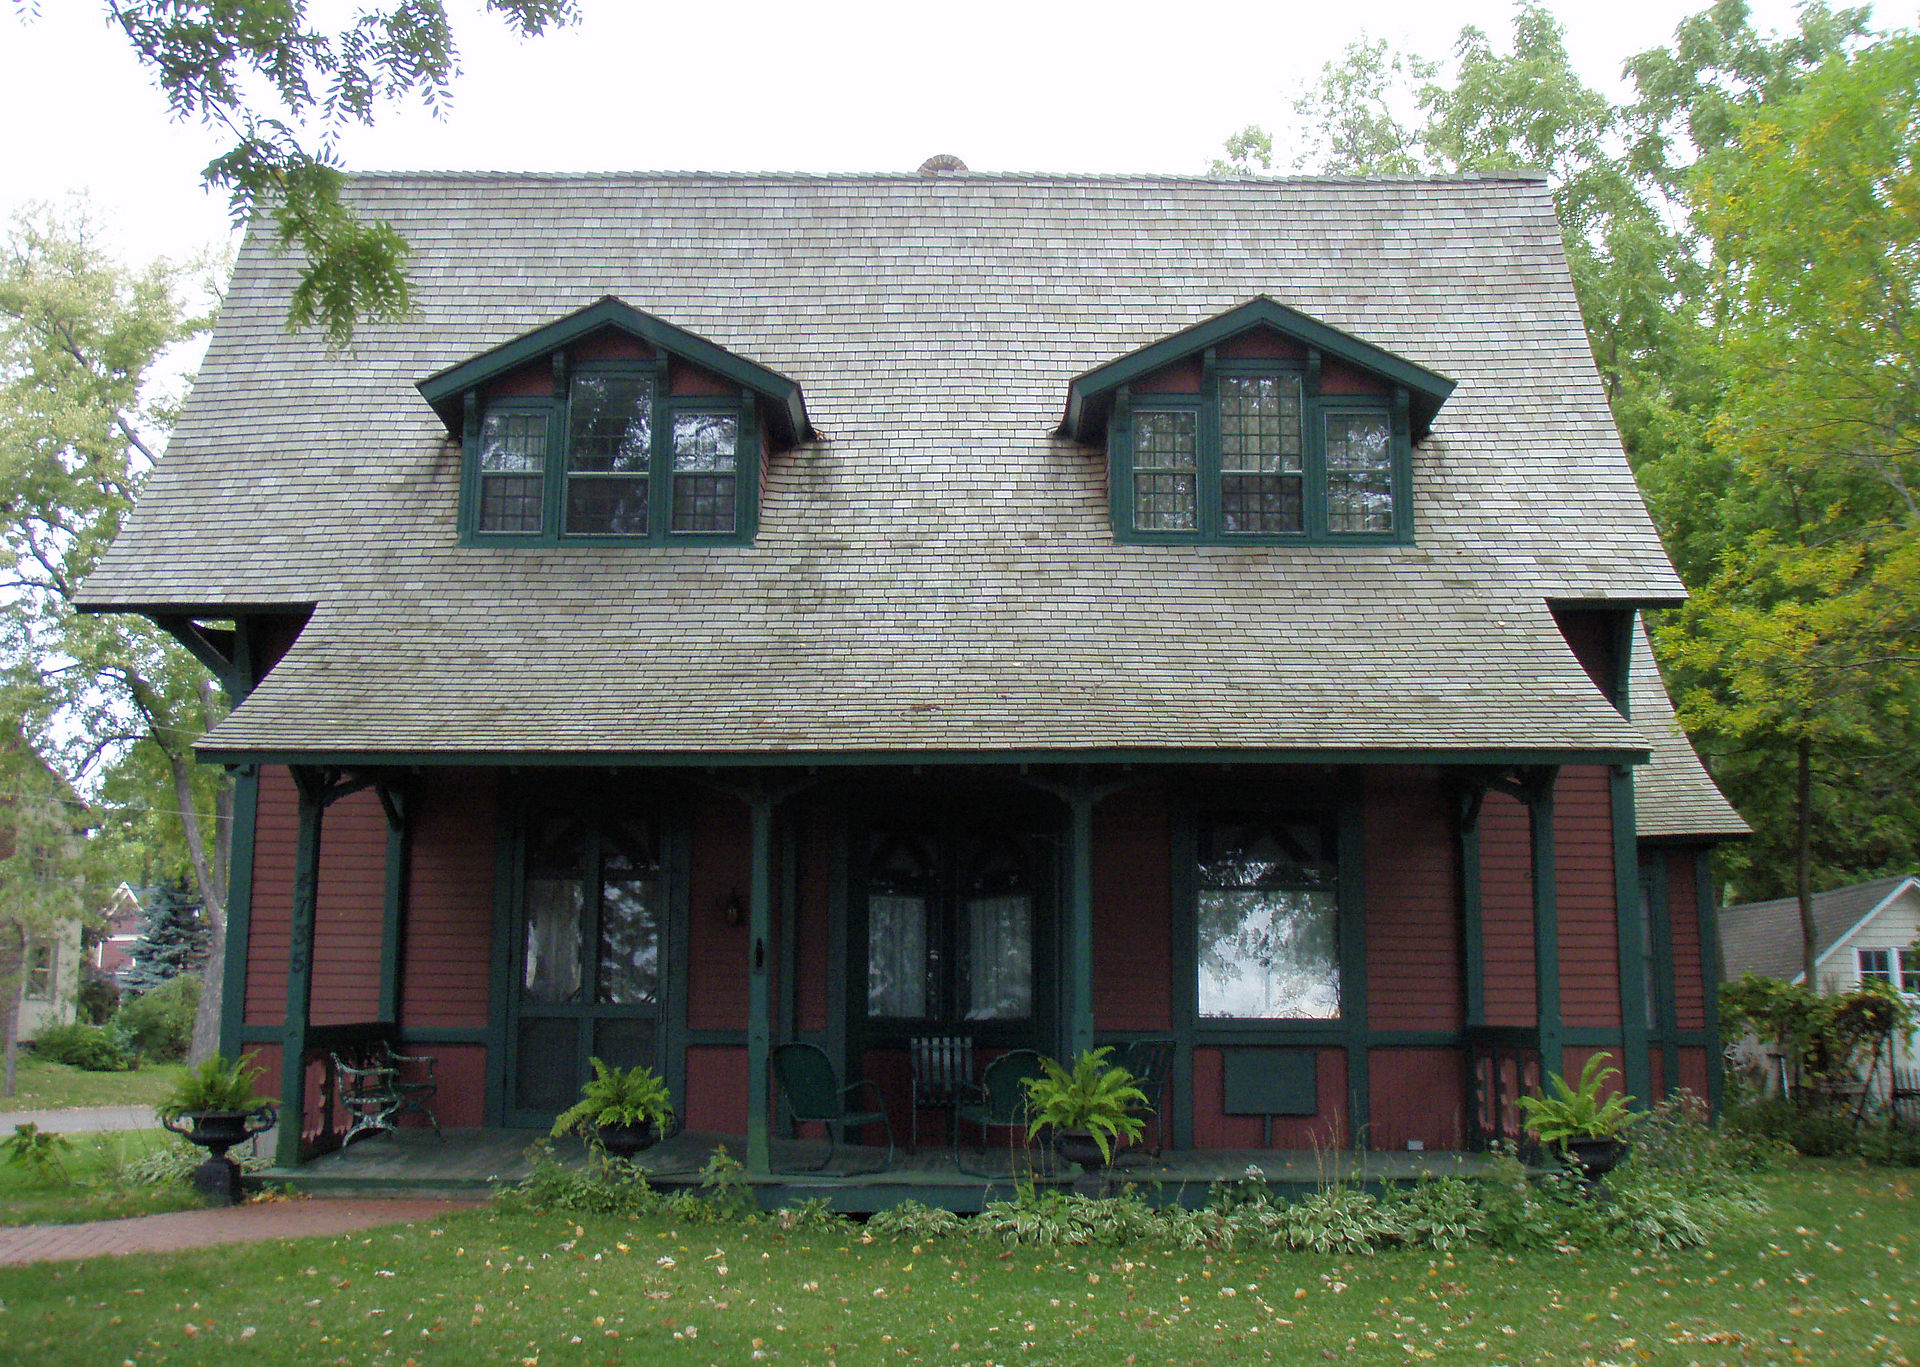 The Fillebrown House was built in 1879, probably by Charles Noyes, to be a summer home he and his family.